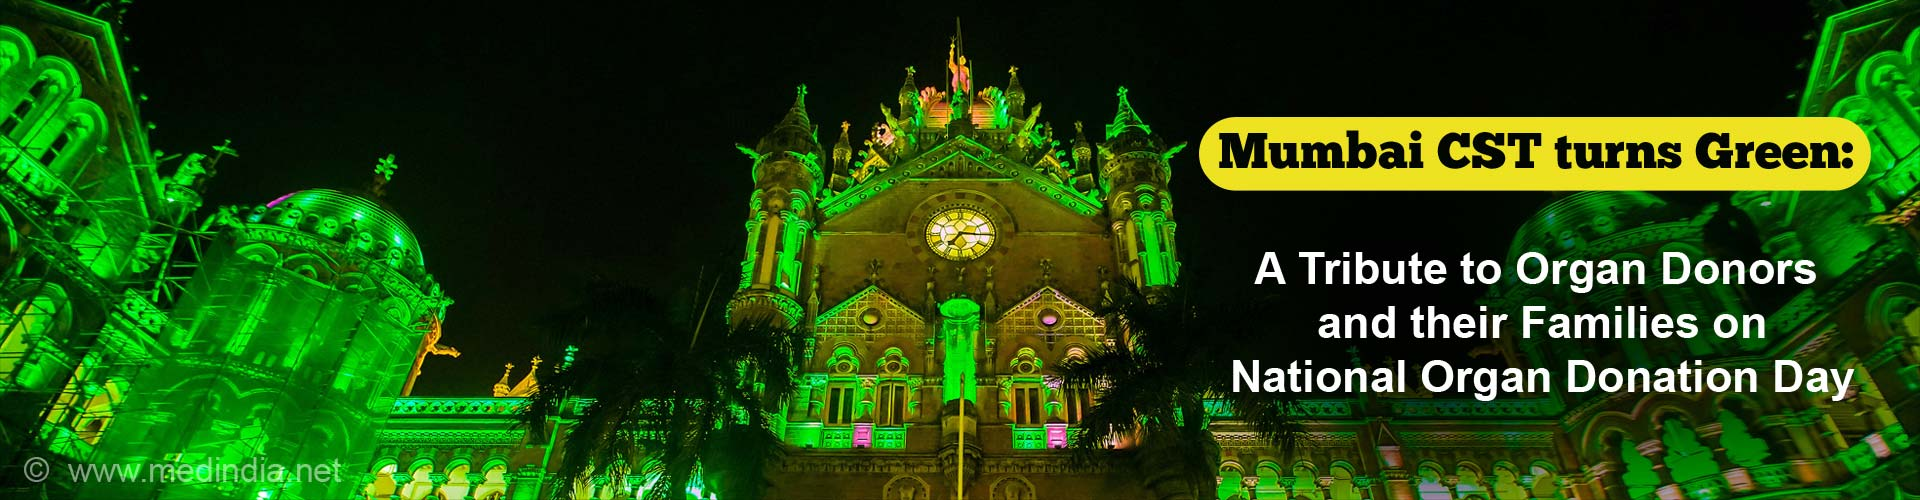 Mumbai CST Glows Green on National Organ Donation Day as a Tribute to Organ Donors